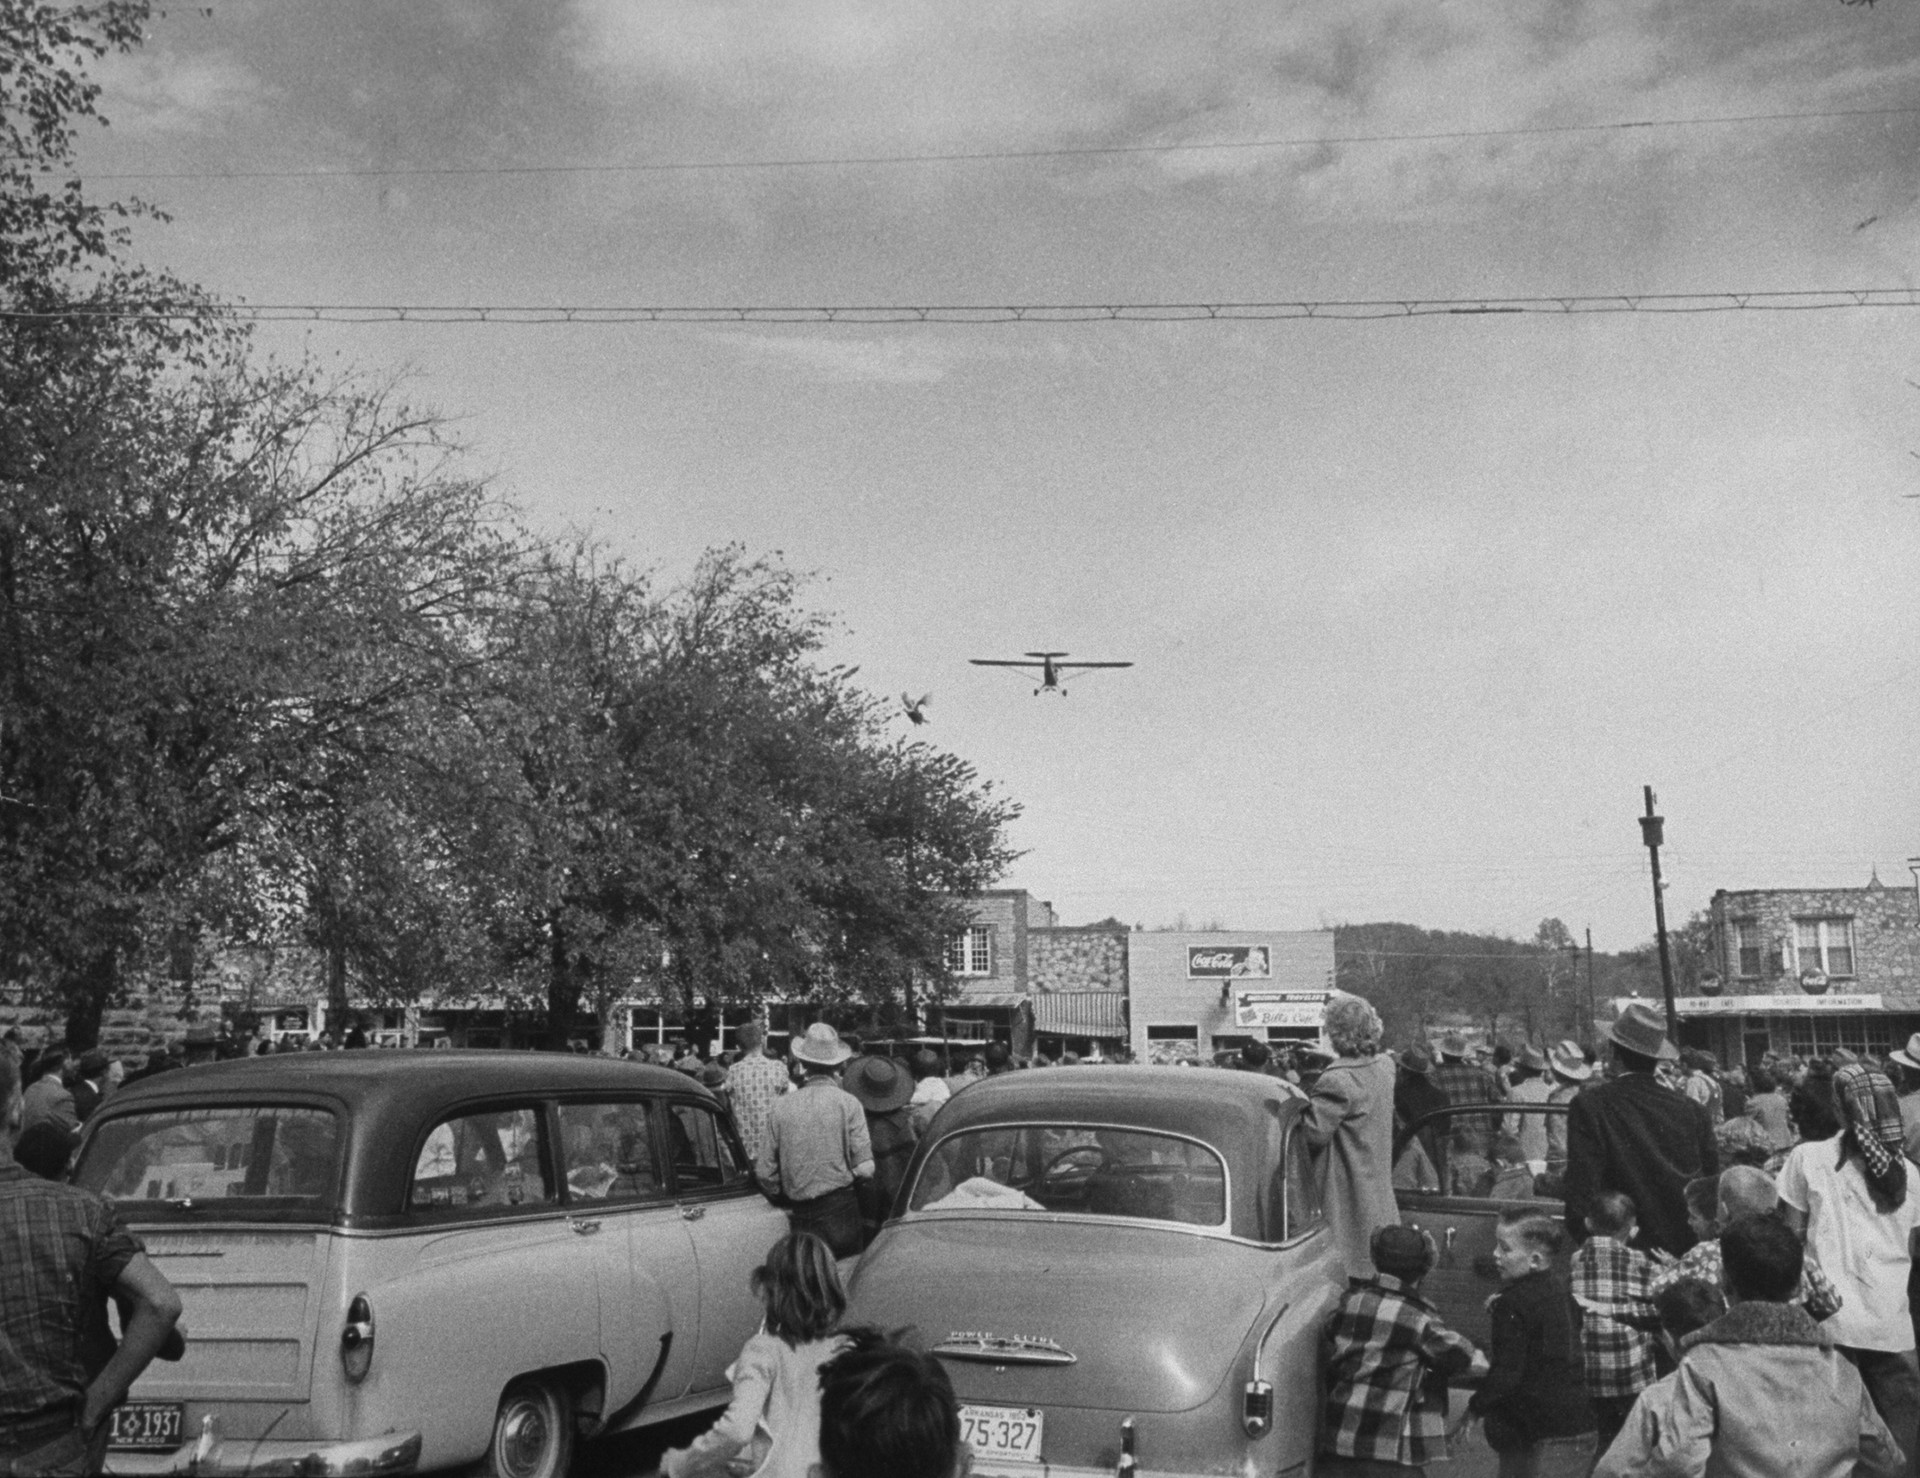 The 1953 turkey drop starts as the first bird is tossed from a low-flying plane.